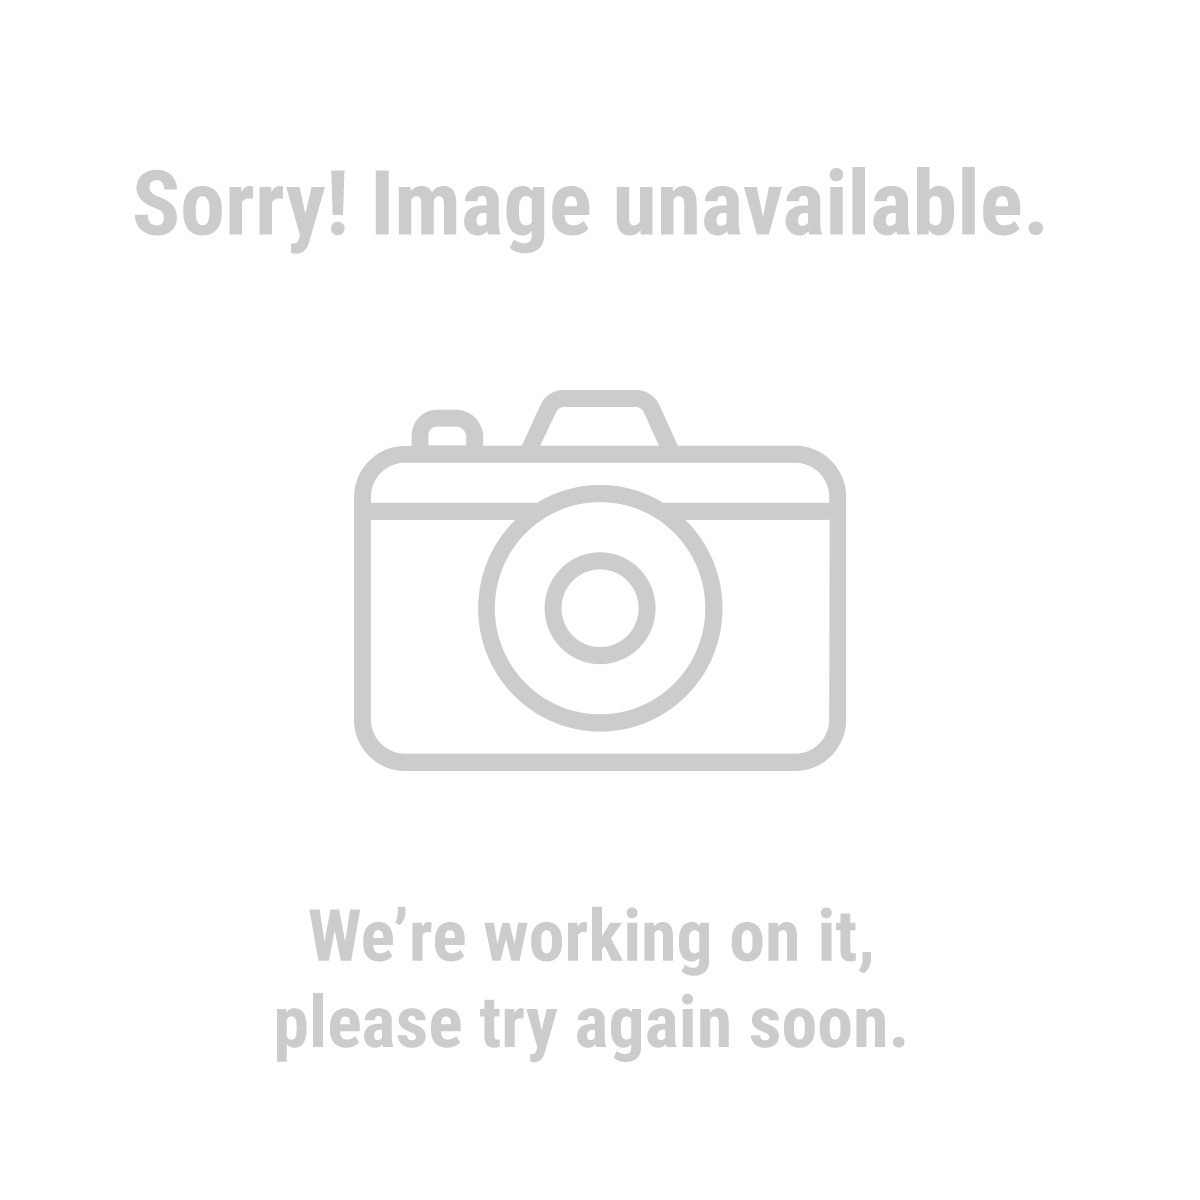 Western Safety 3452 12 Pocket Oil Tanned Tool Belt